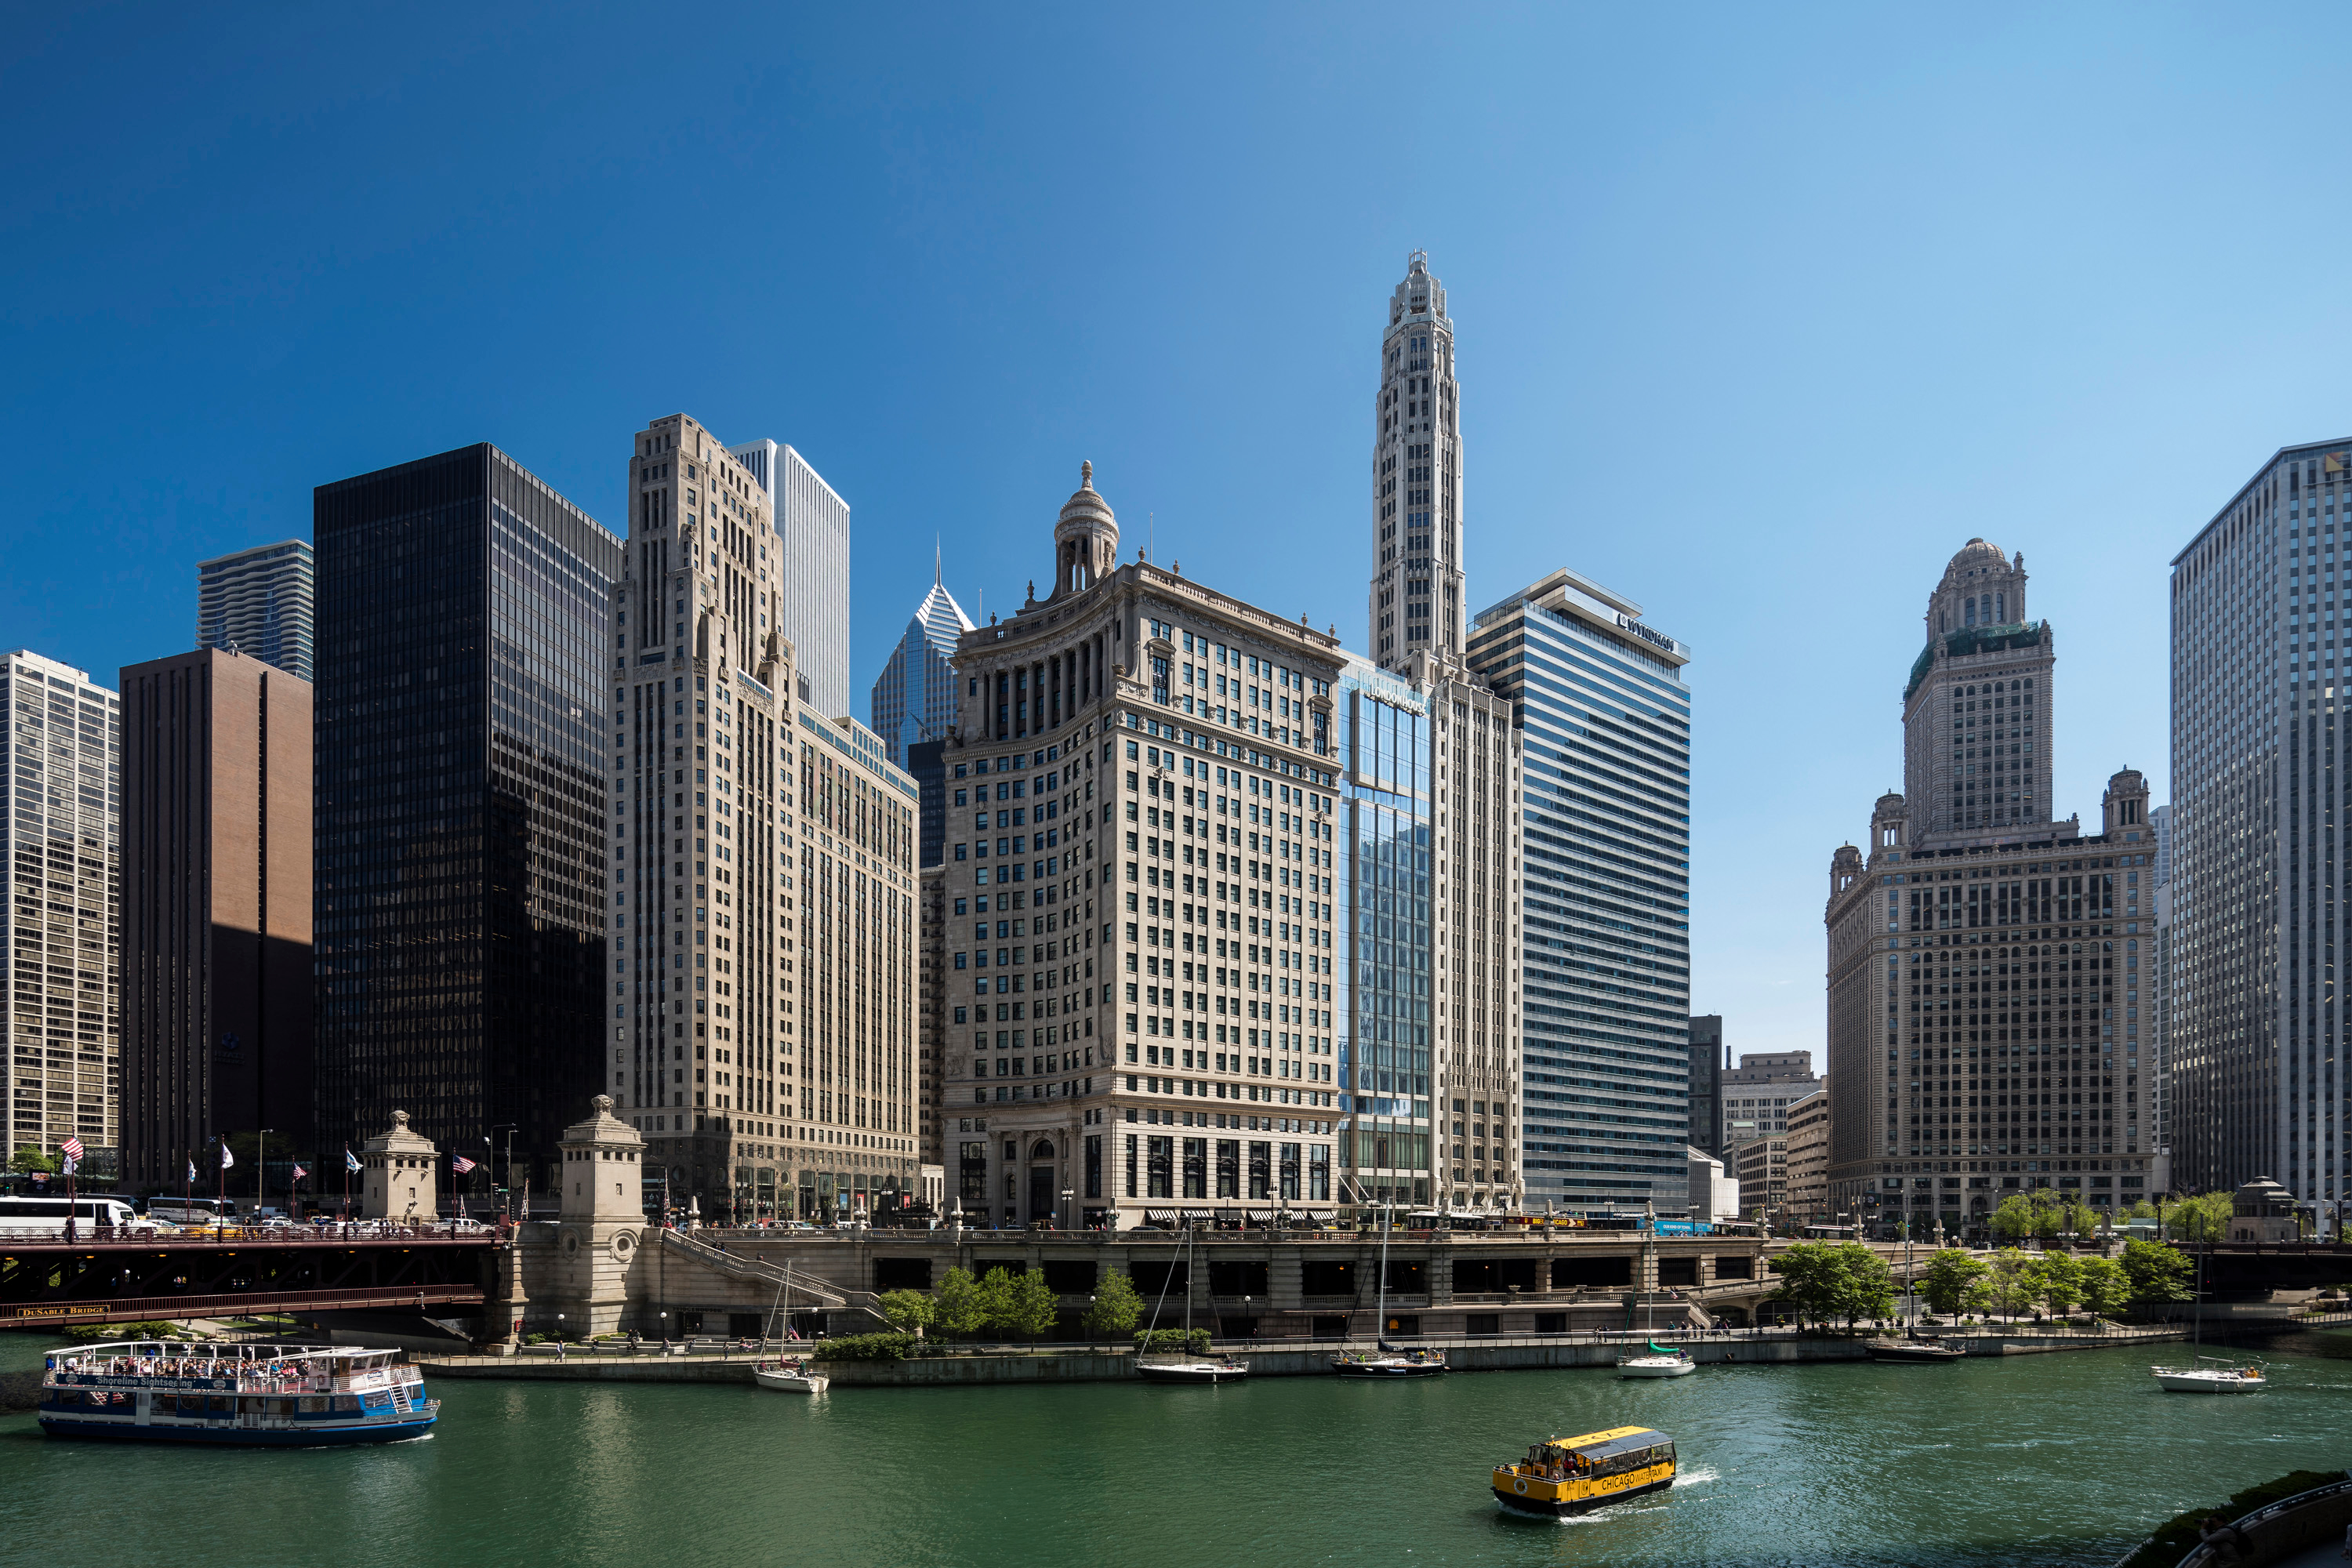 LondonHouse Chicago, Curio Collection by Hilton image 1